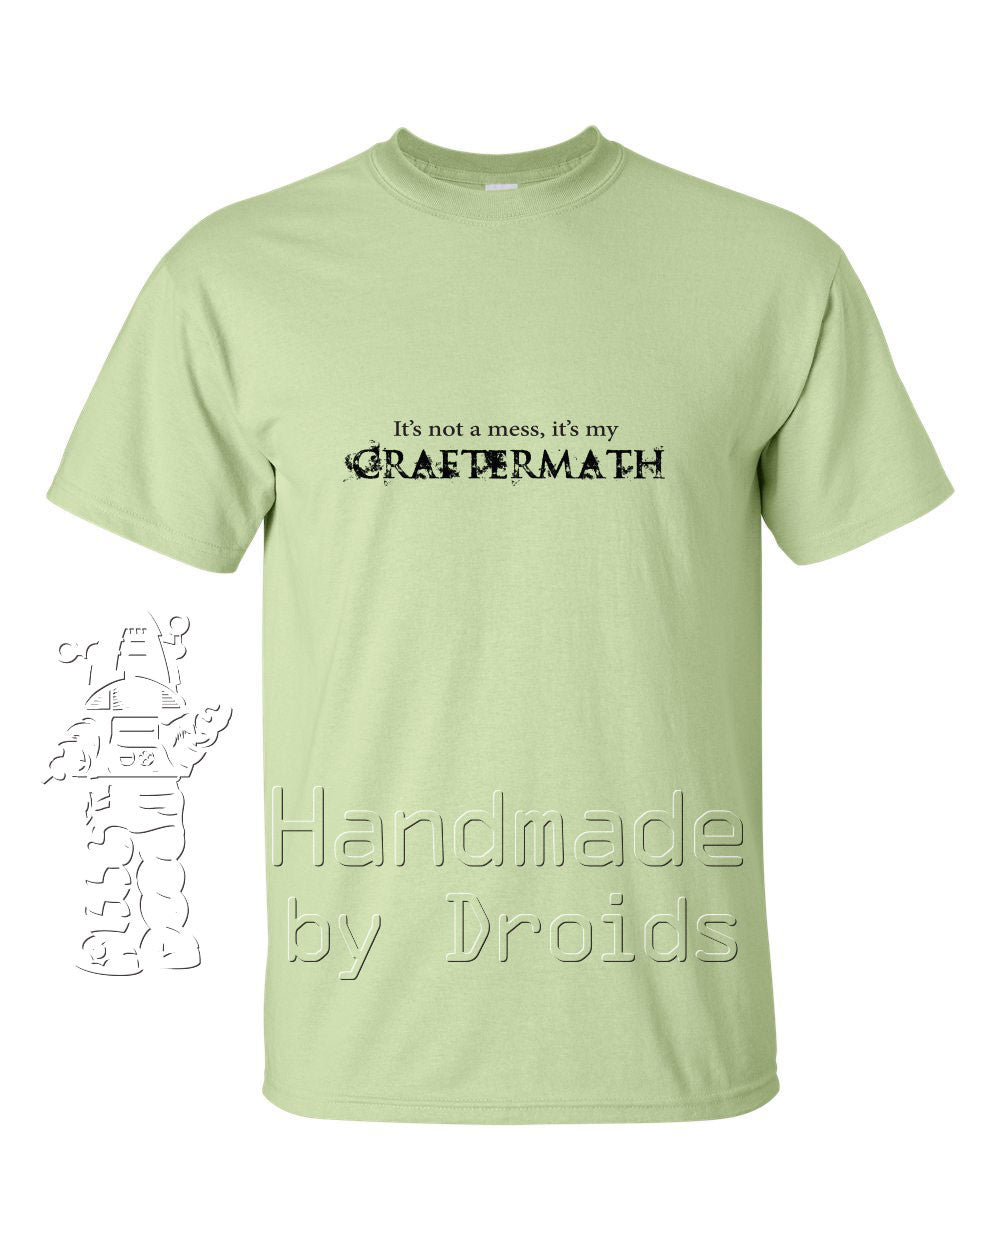 """It's not a mess - it's my Craftermath"" Pistachio T-shirt"